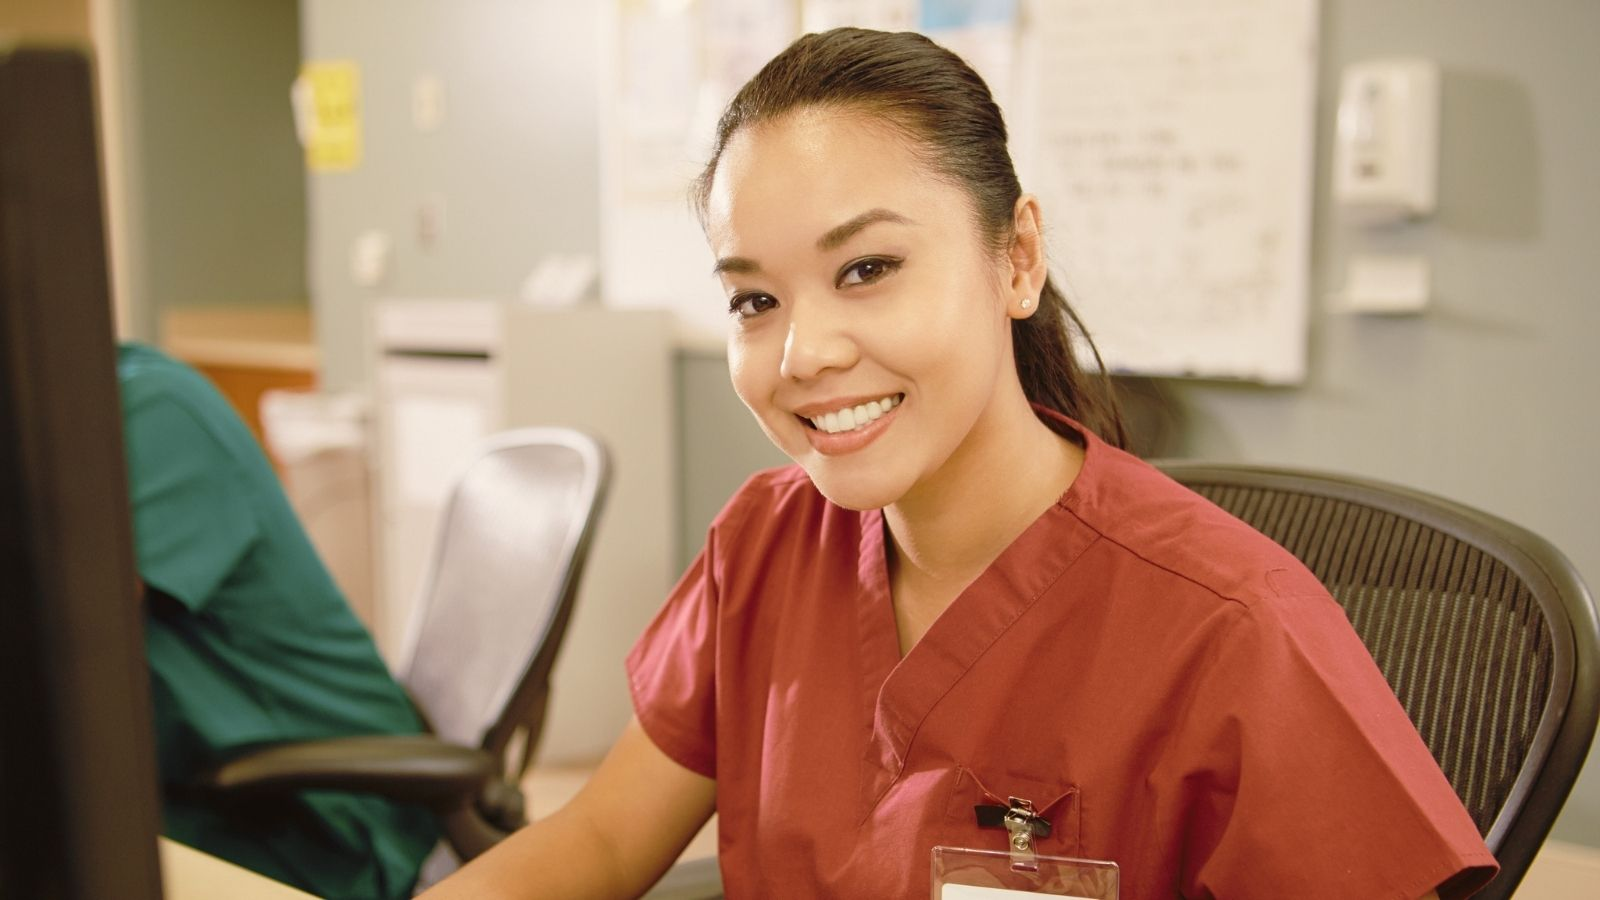 The Ultimate CGFNS - CES Guide for Foreign Educated Nurses